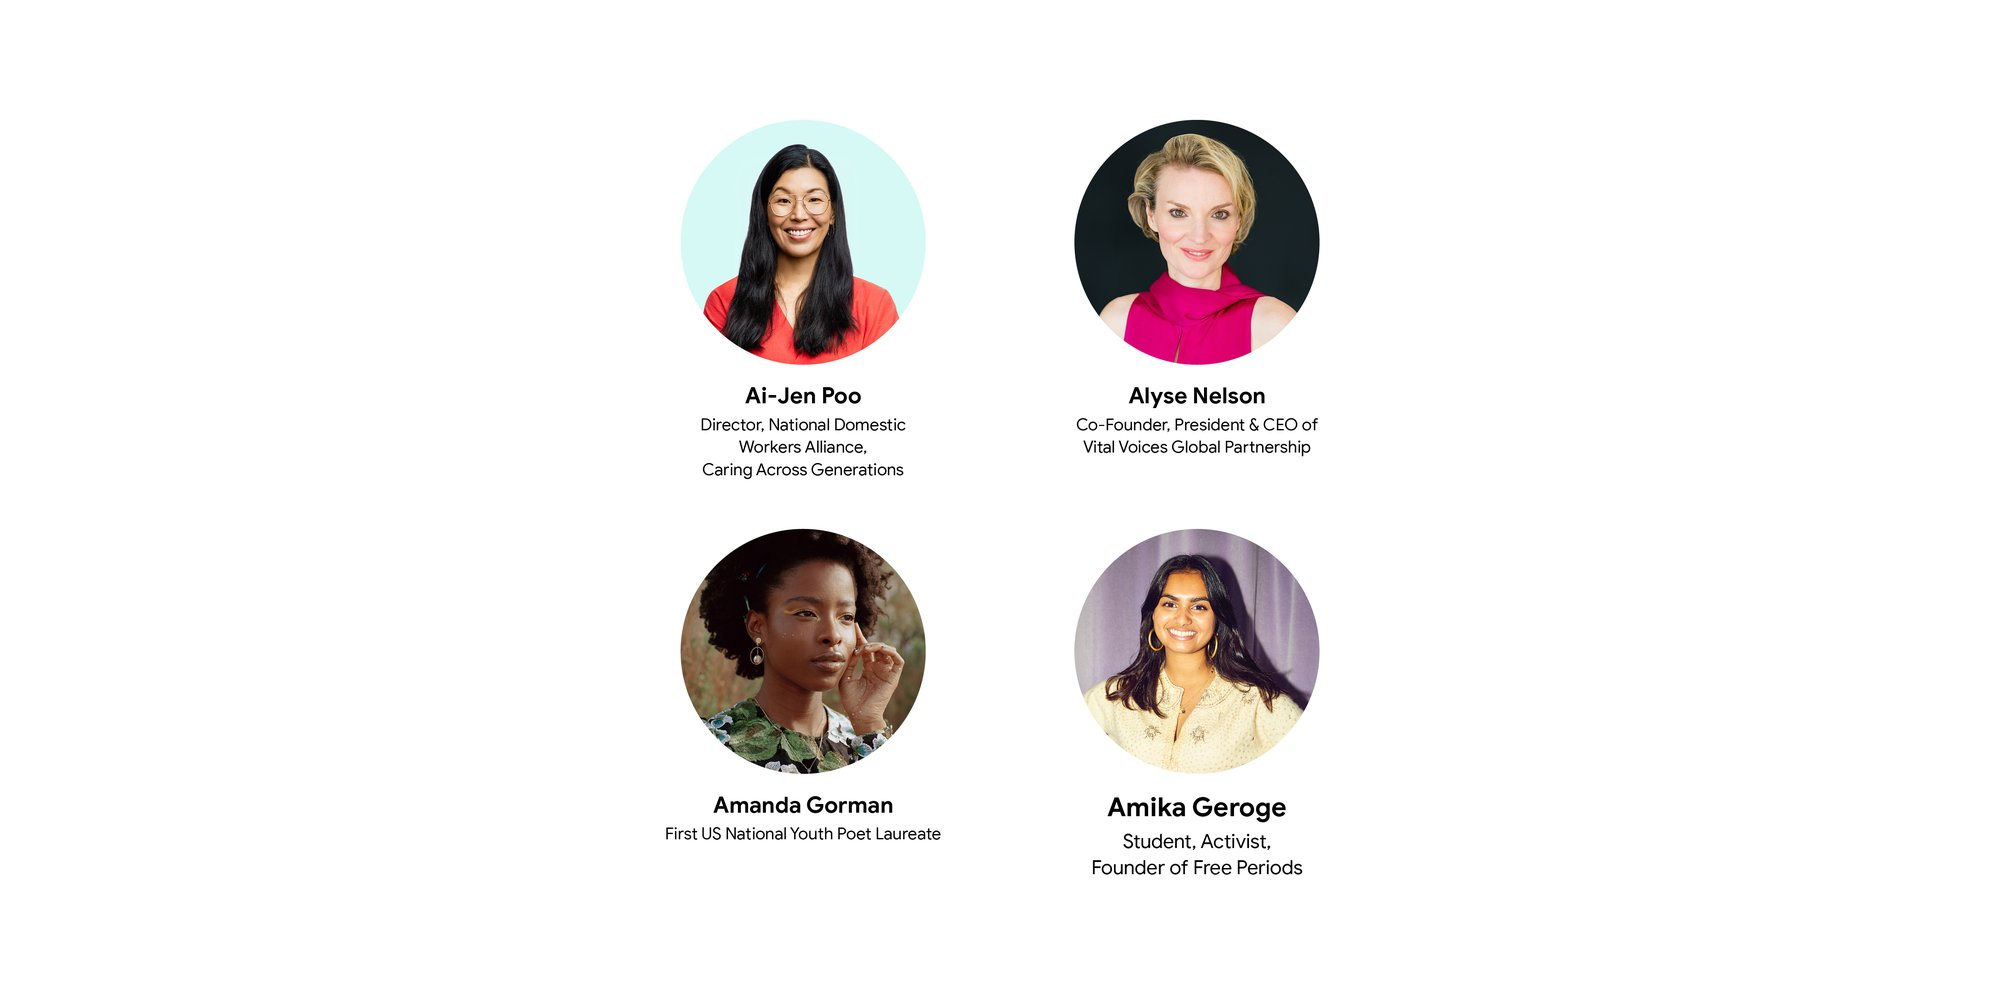 Google's call for a better future for women and girls